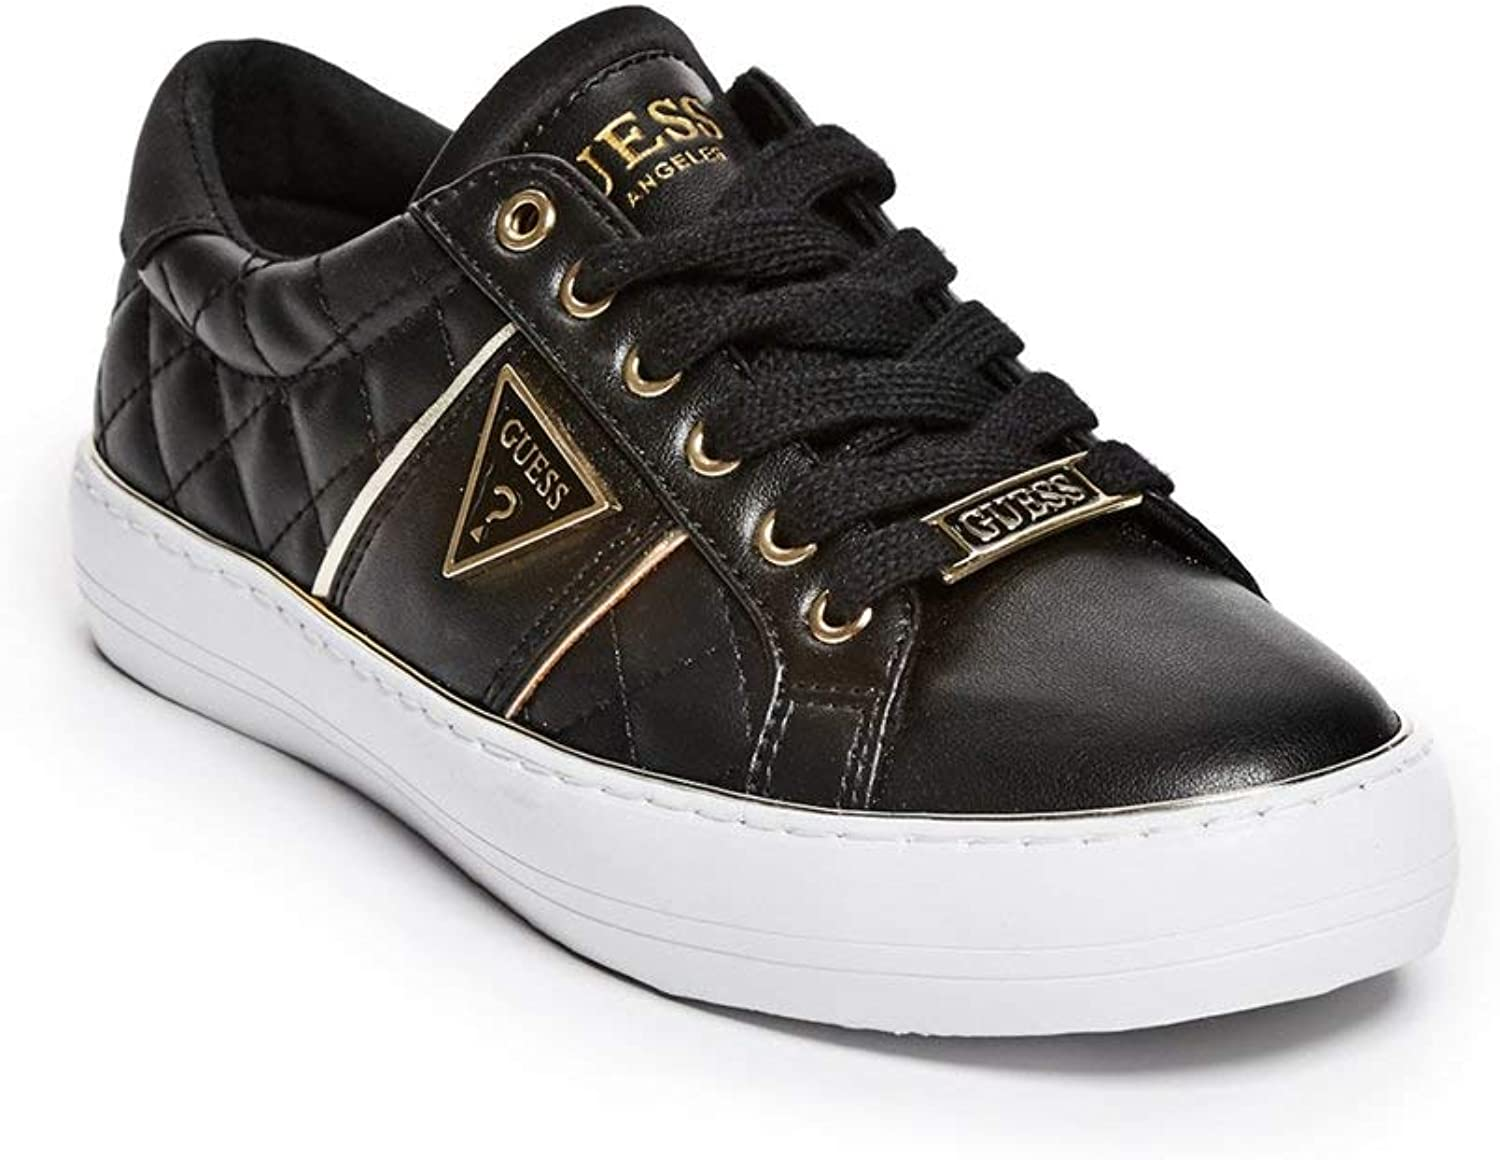 Guess Factory Women's Gilda Quilted Low-Top Sneakers